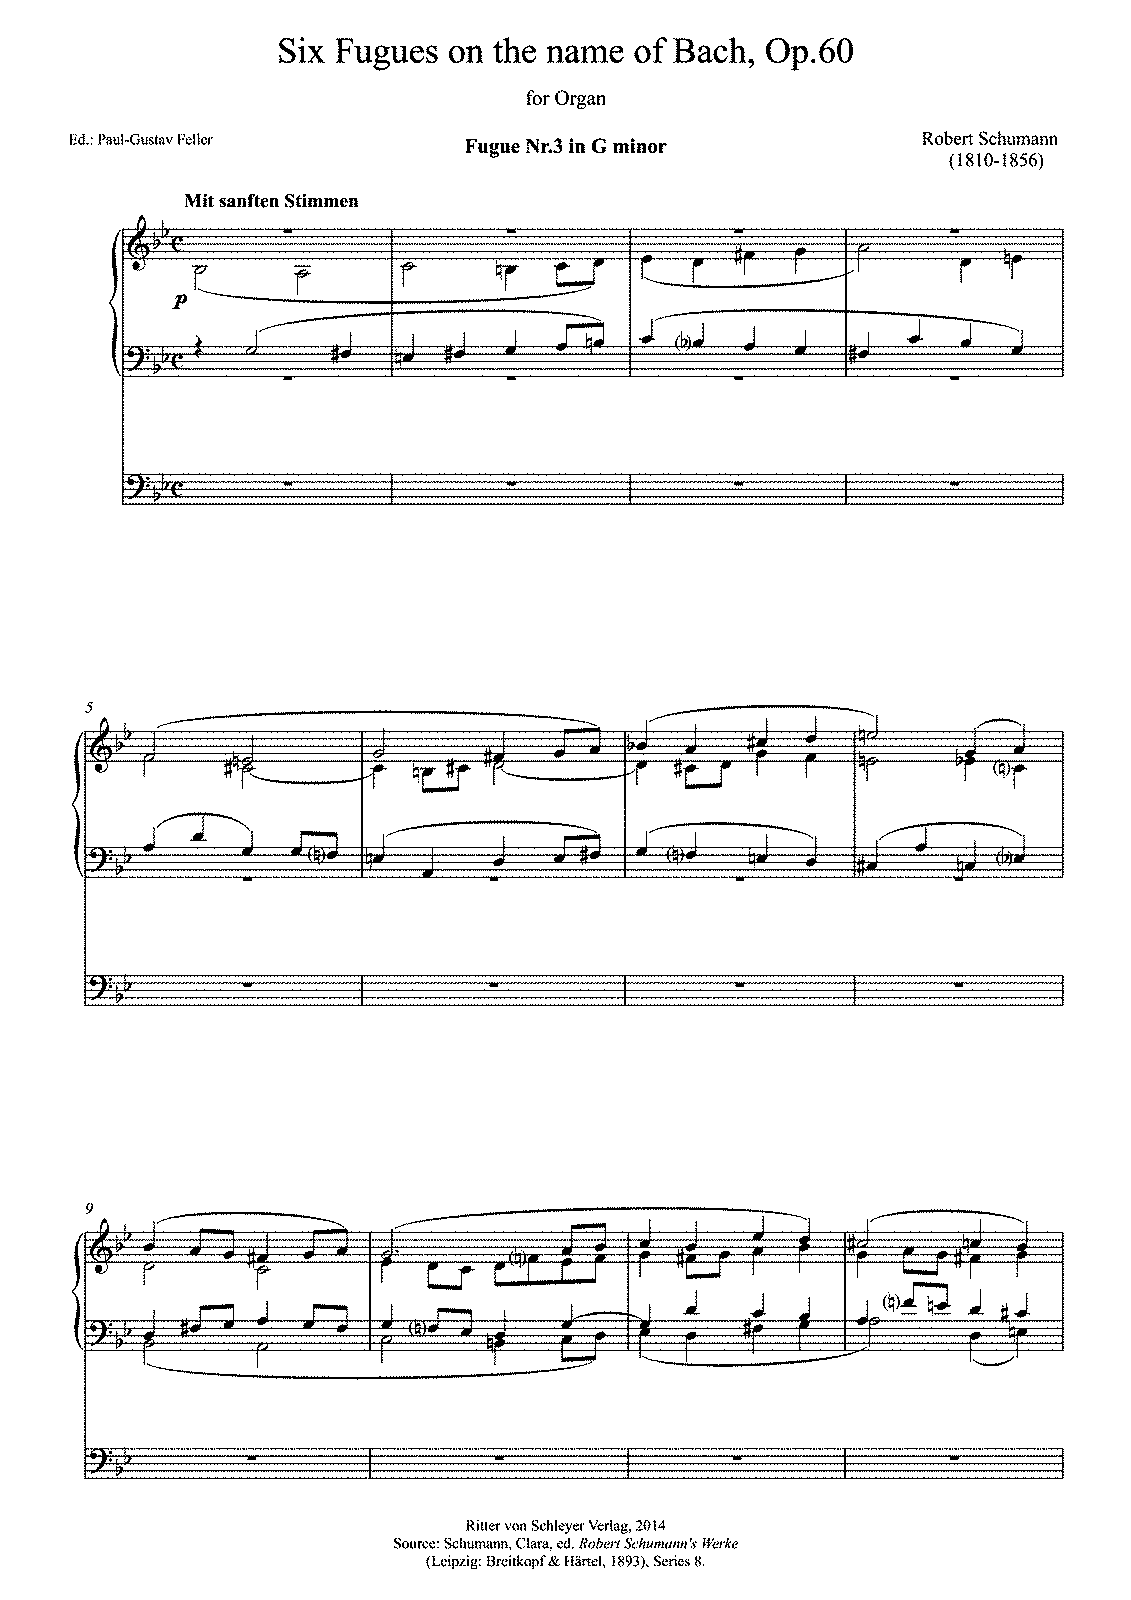 PMLP64378-Schumann; Six Fugues on the name of Bach, Op 60 III.pdf